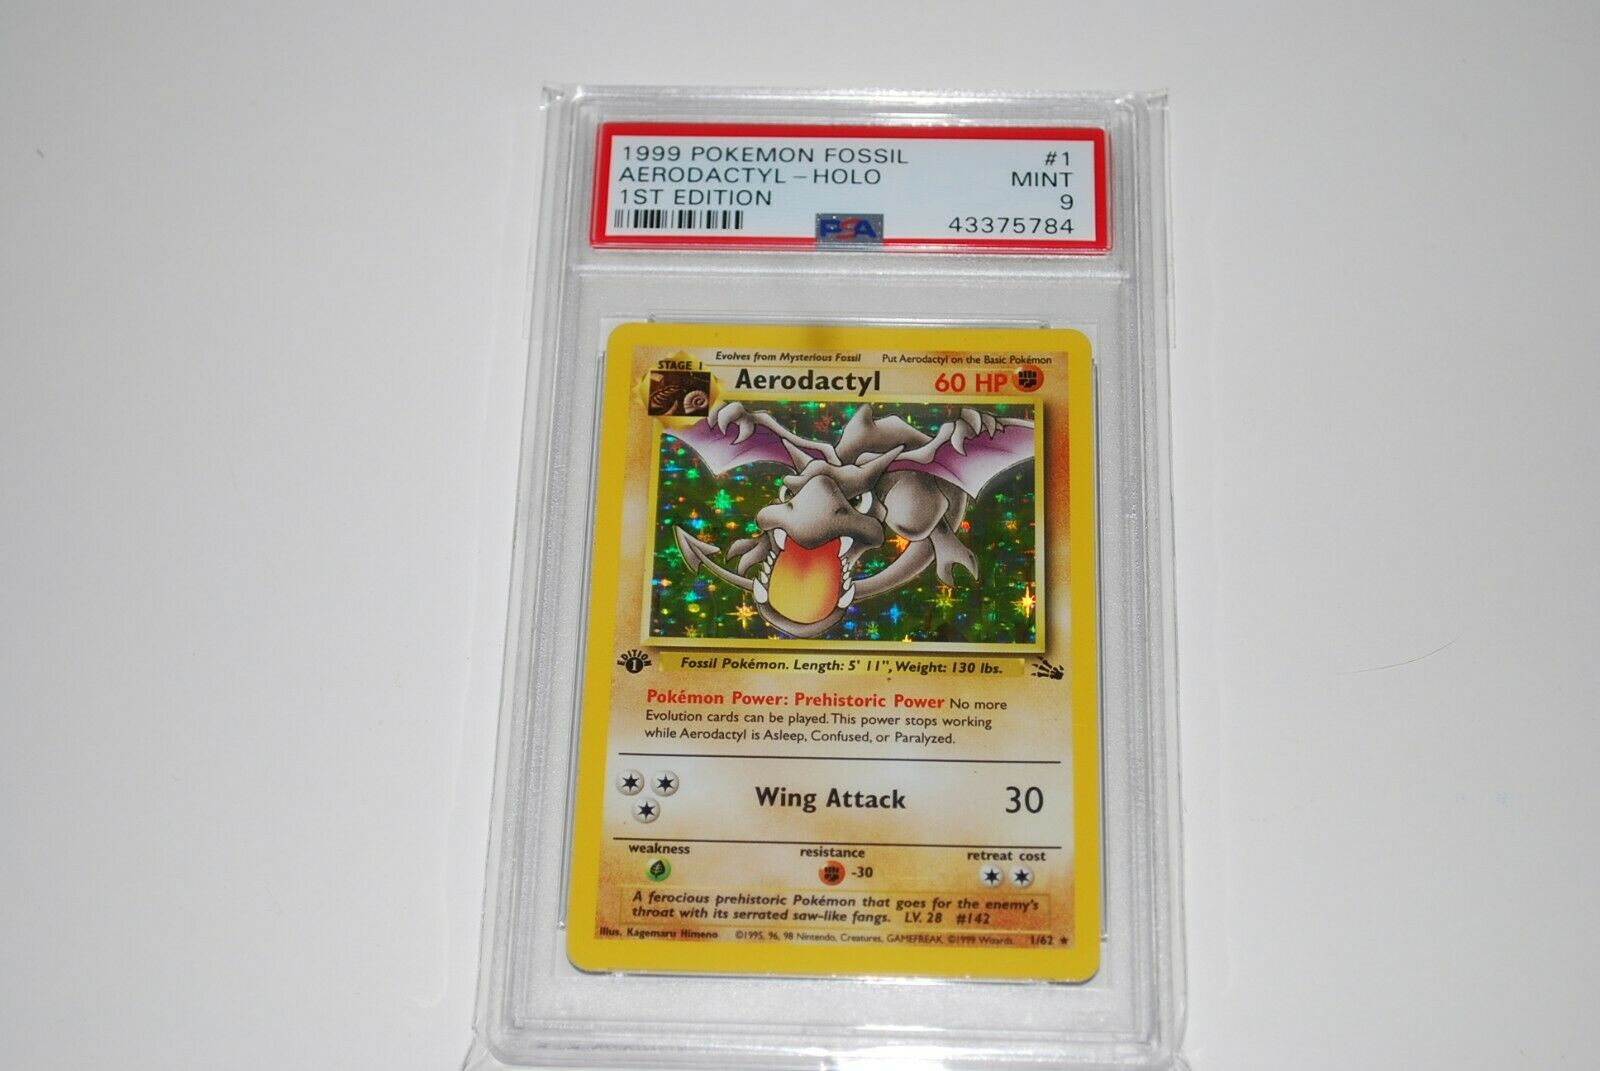 PSA 9 Mint 1st Edition Aerodactyl Holo 162 Fossil Pokemon Card 1999